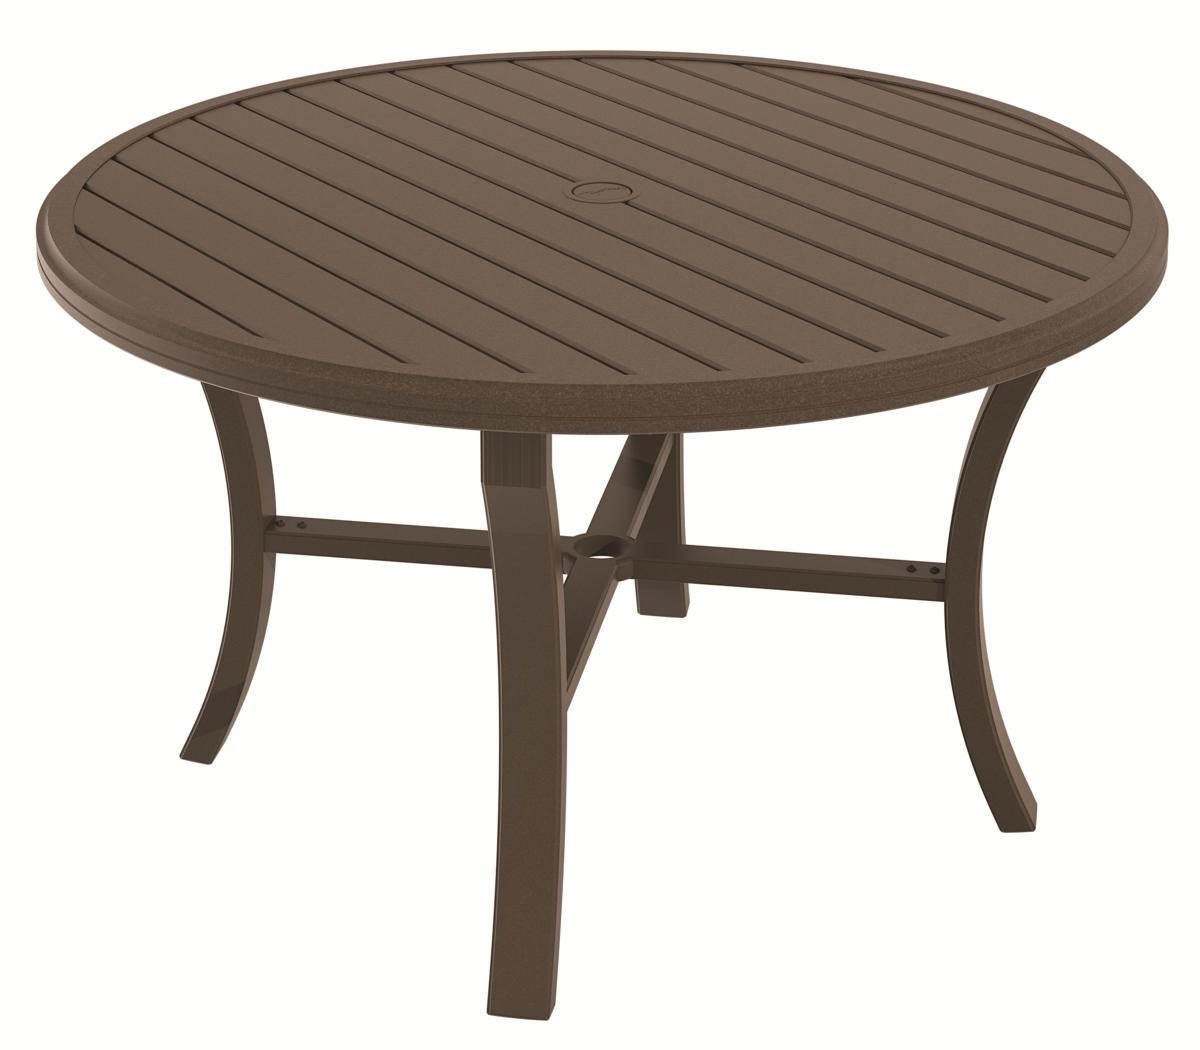 Superieur Outdoor Tables Outdoor Aluminum Table With Round Slatted Top By Tropitone